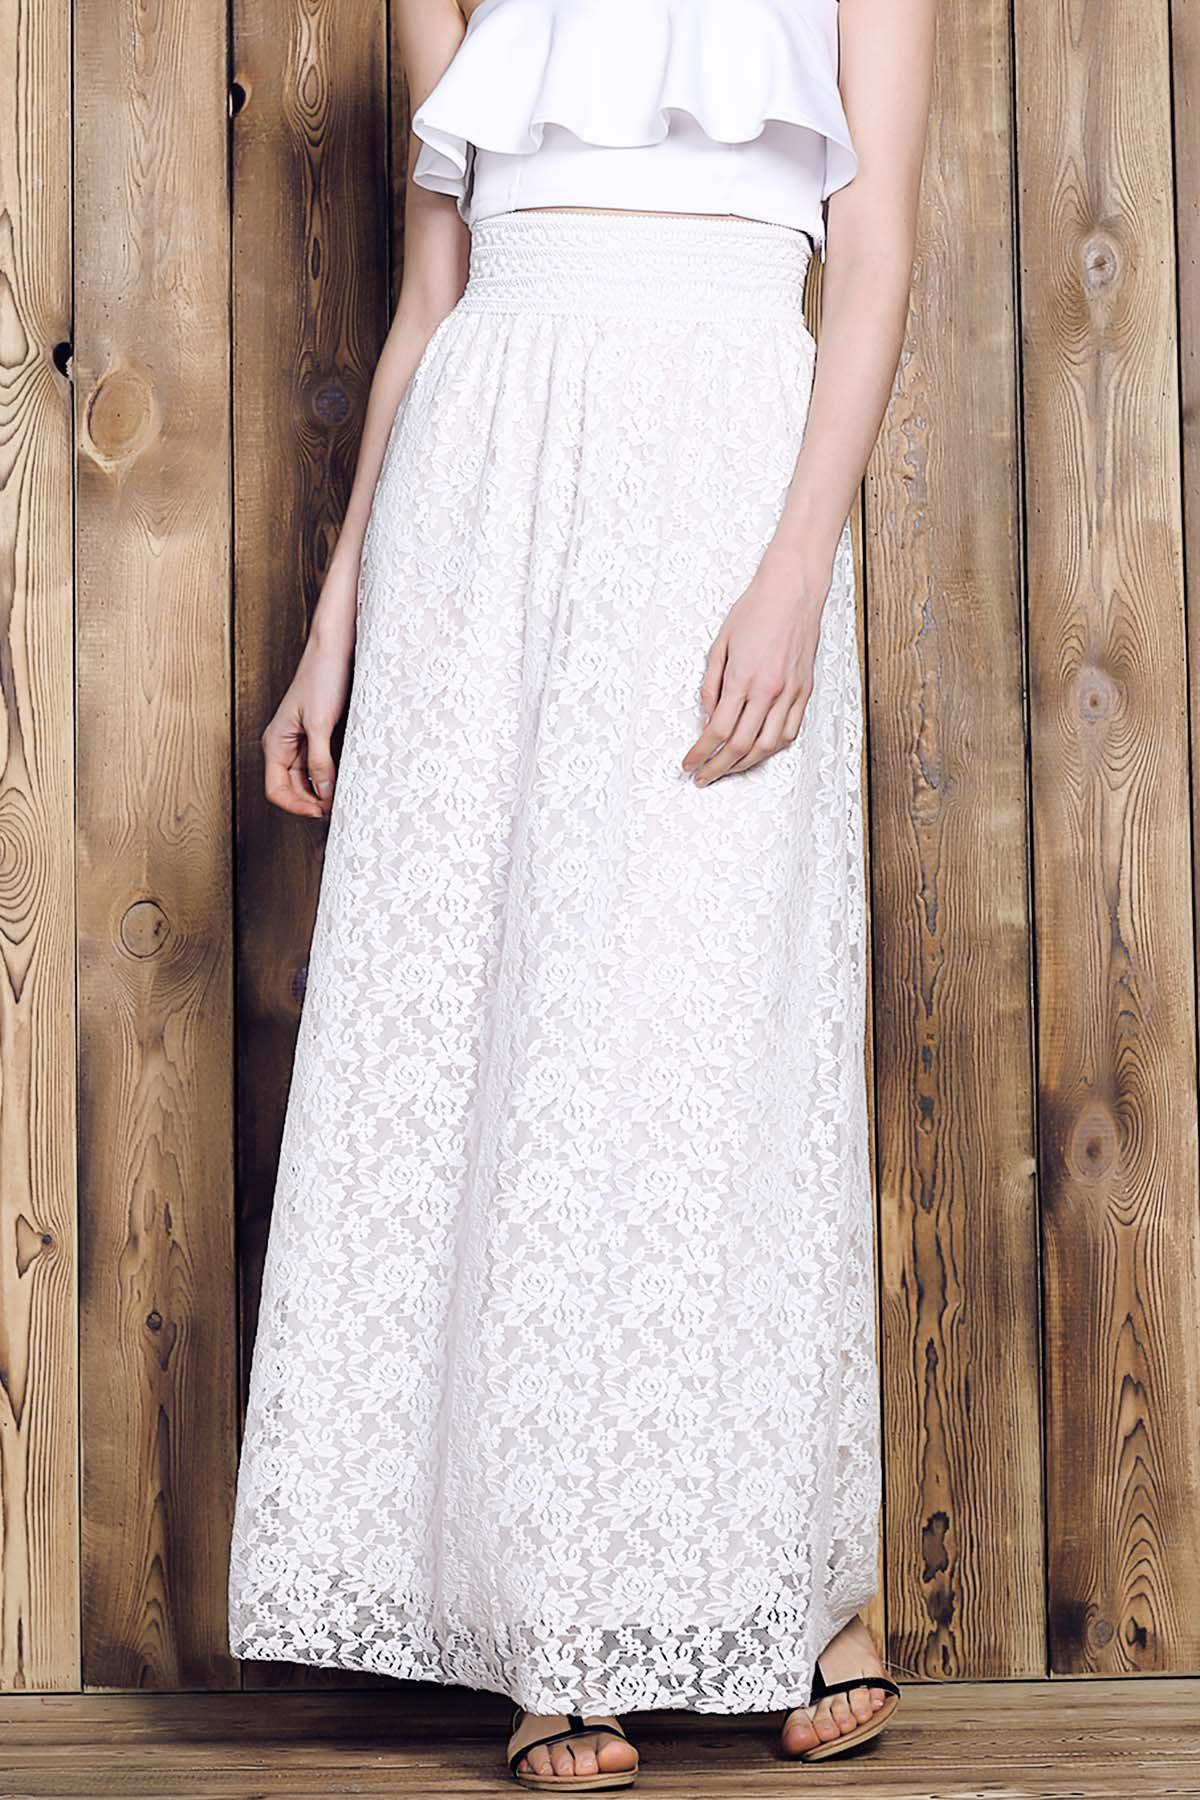 Elegant Women's High-Waisted Lace Maxi Skirt - WHITE S